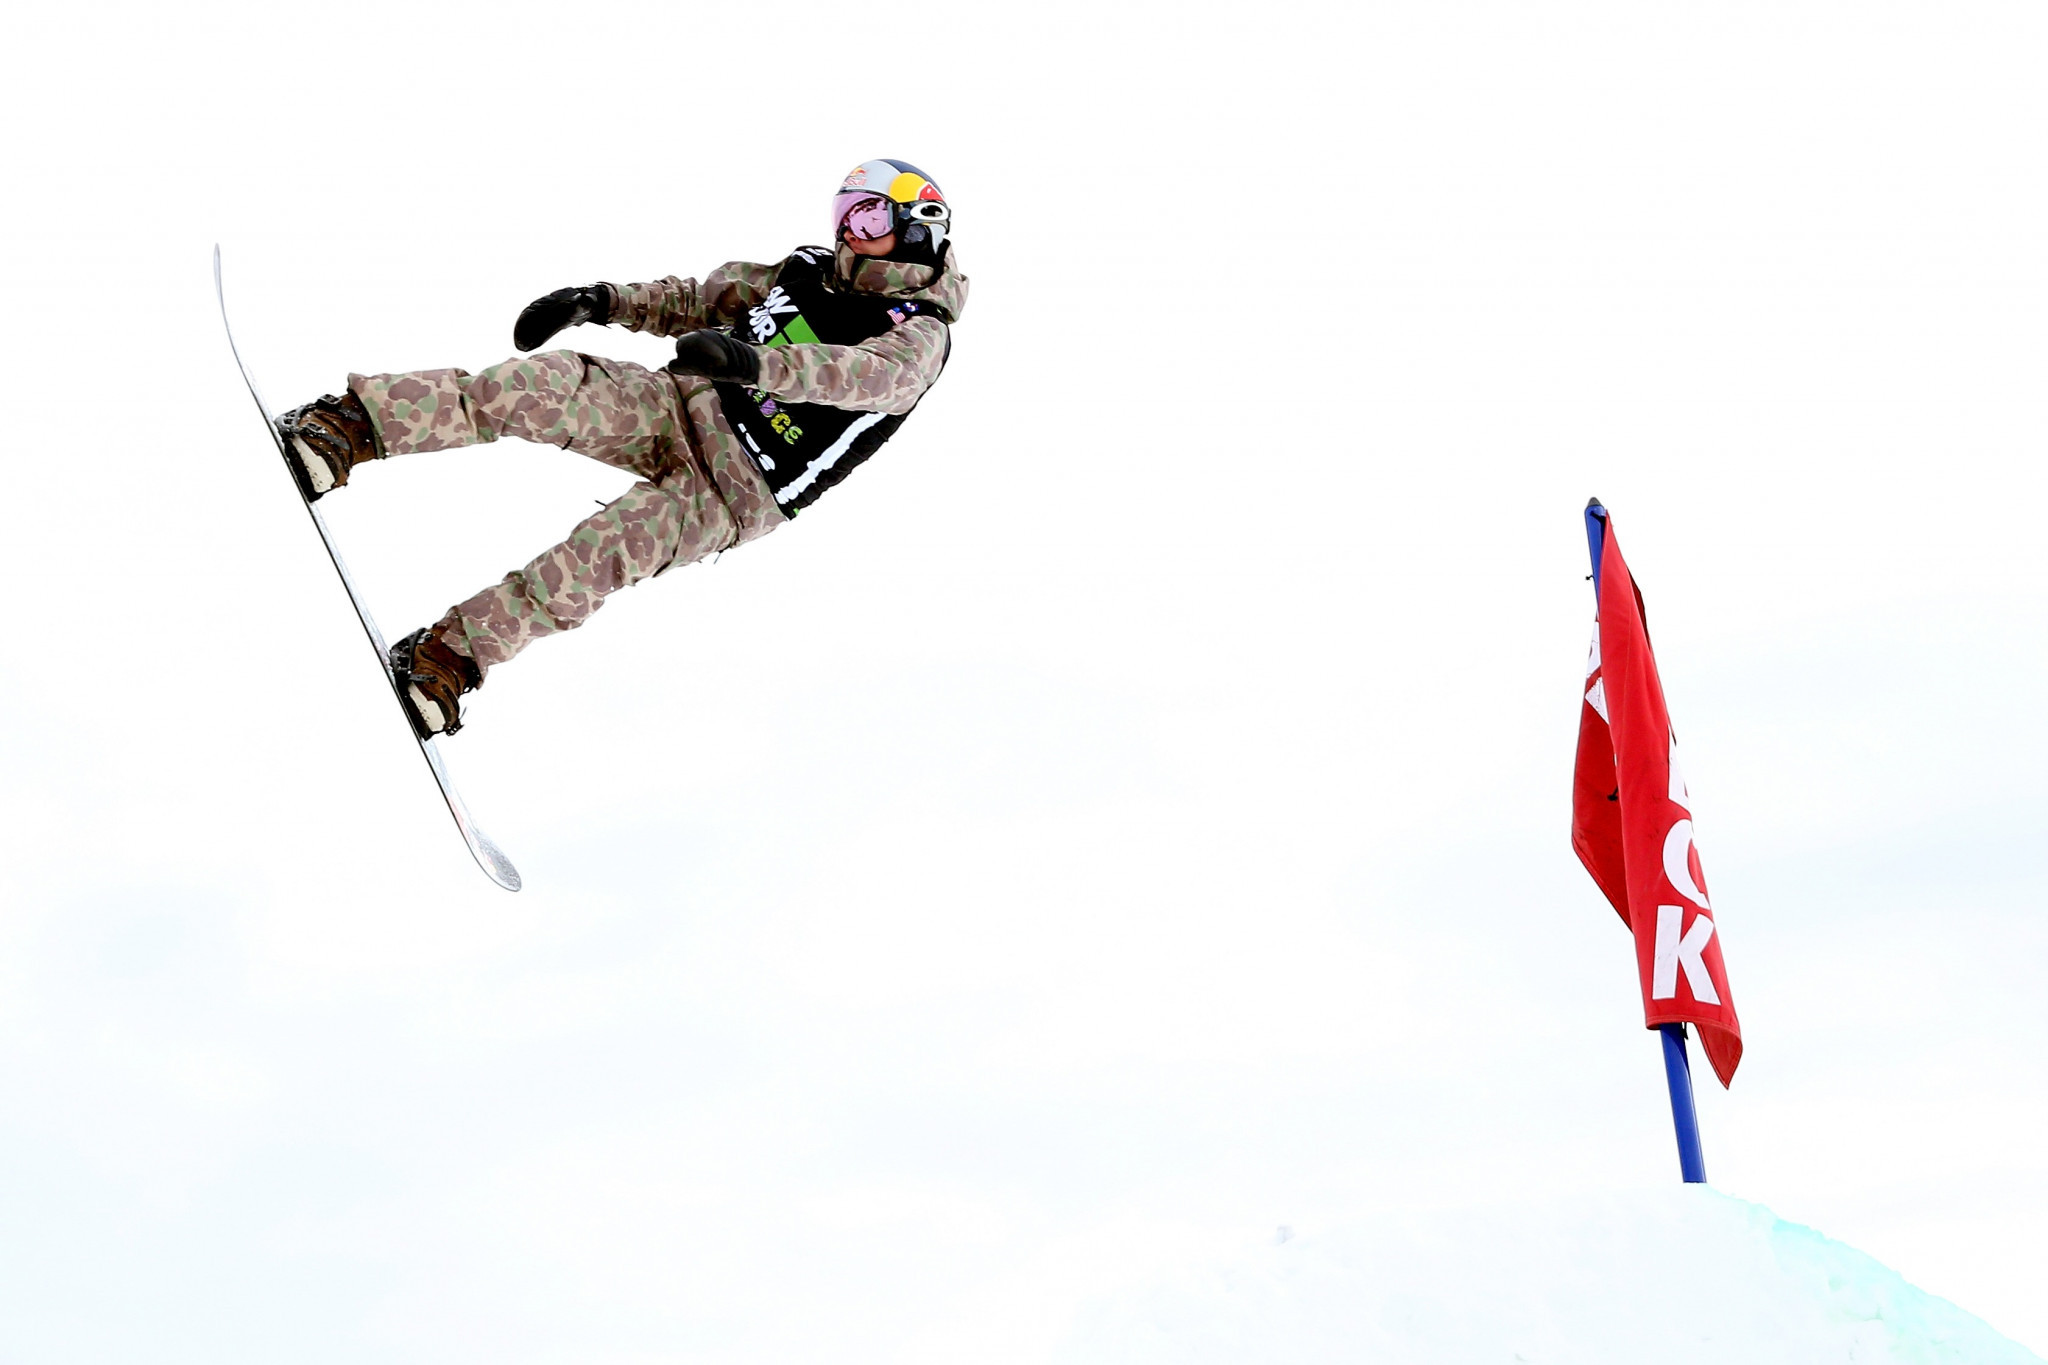 Canada's Mark McMorris is among those expected to be in contention for men's slopestyle success in Laax ©Getty Images